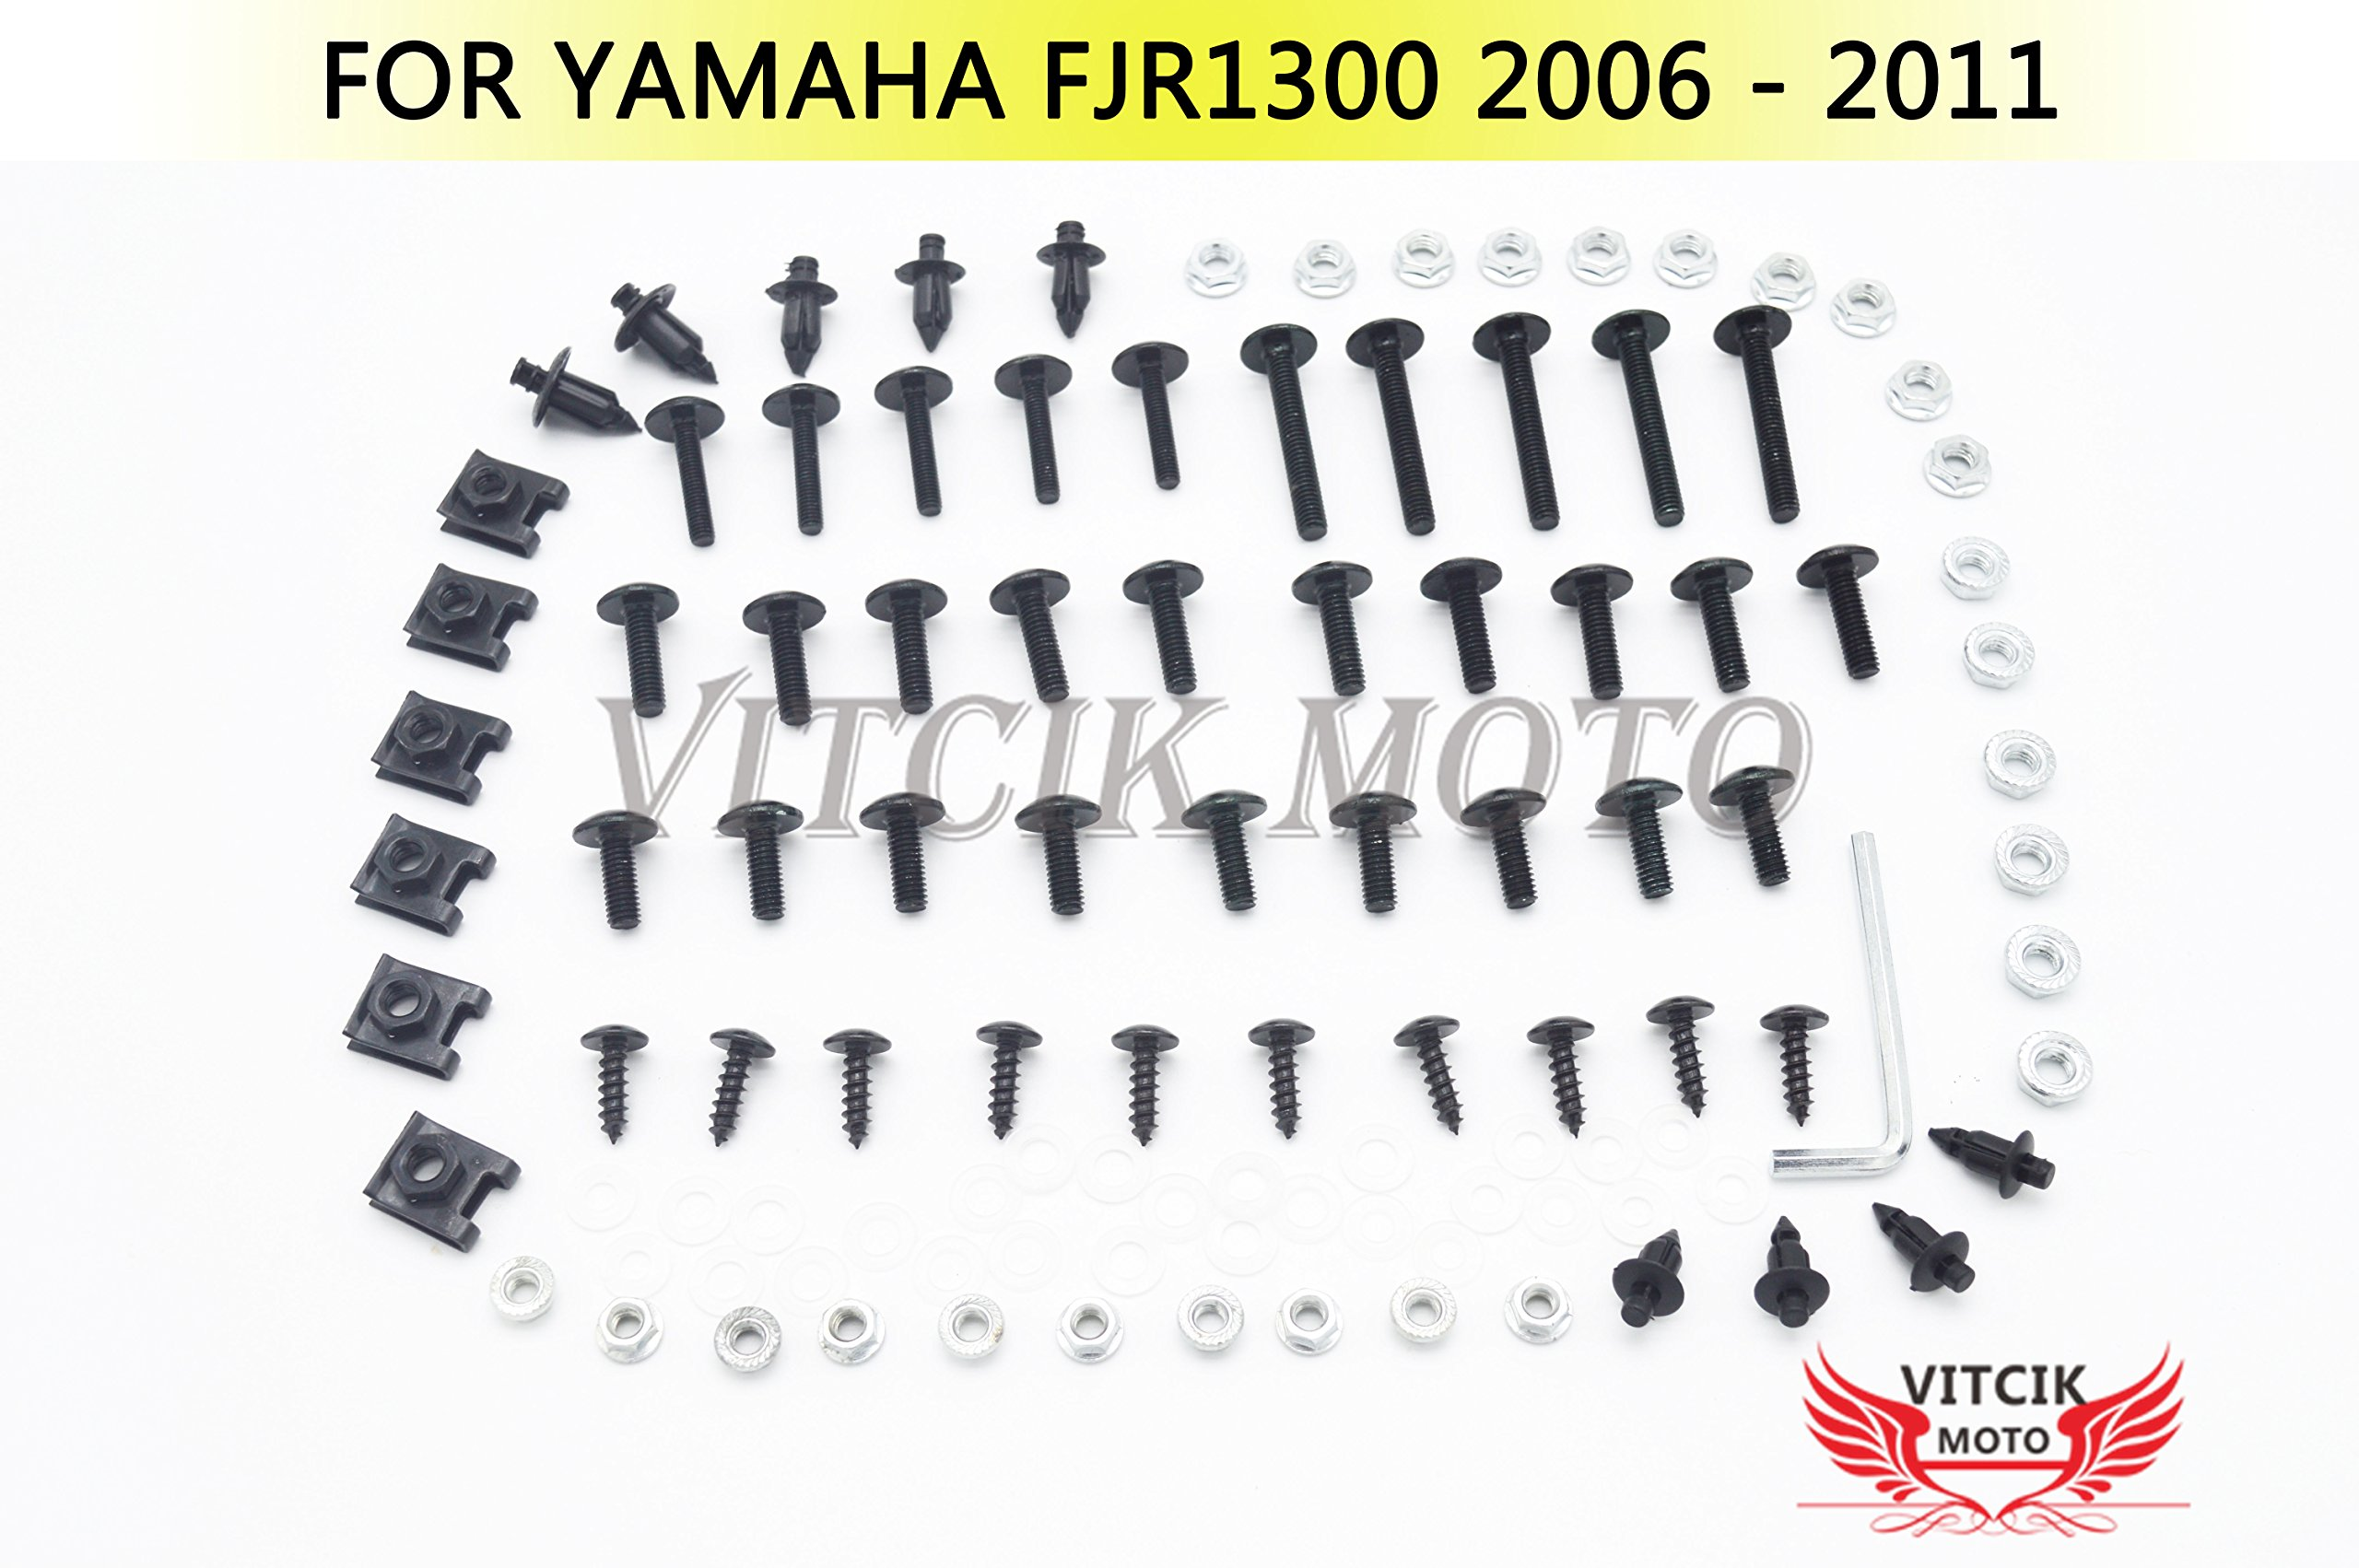 VITCIK Full Fairings Bolt Screw Kits for Yamaha FJR 1300 2006 2007 2008 2009 2010 2011 FJR 1300 06 - 11 Motorcycle Fastener CNC Aluminium Clips (Black & Silver)